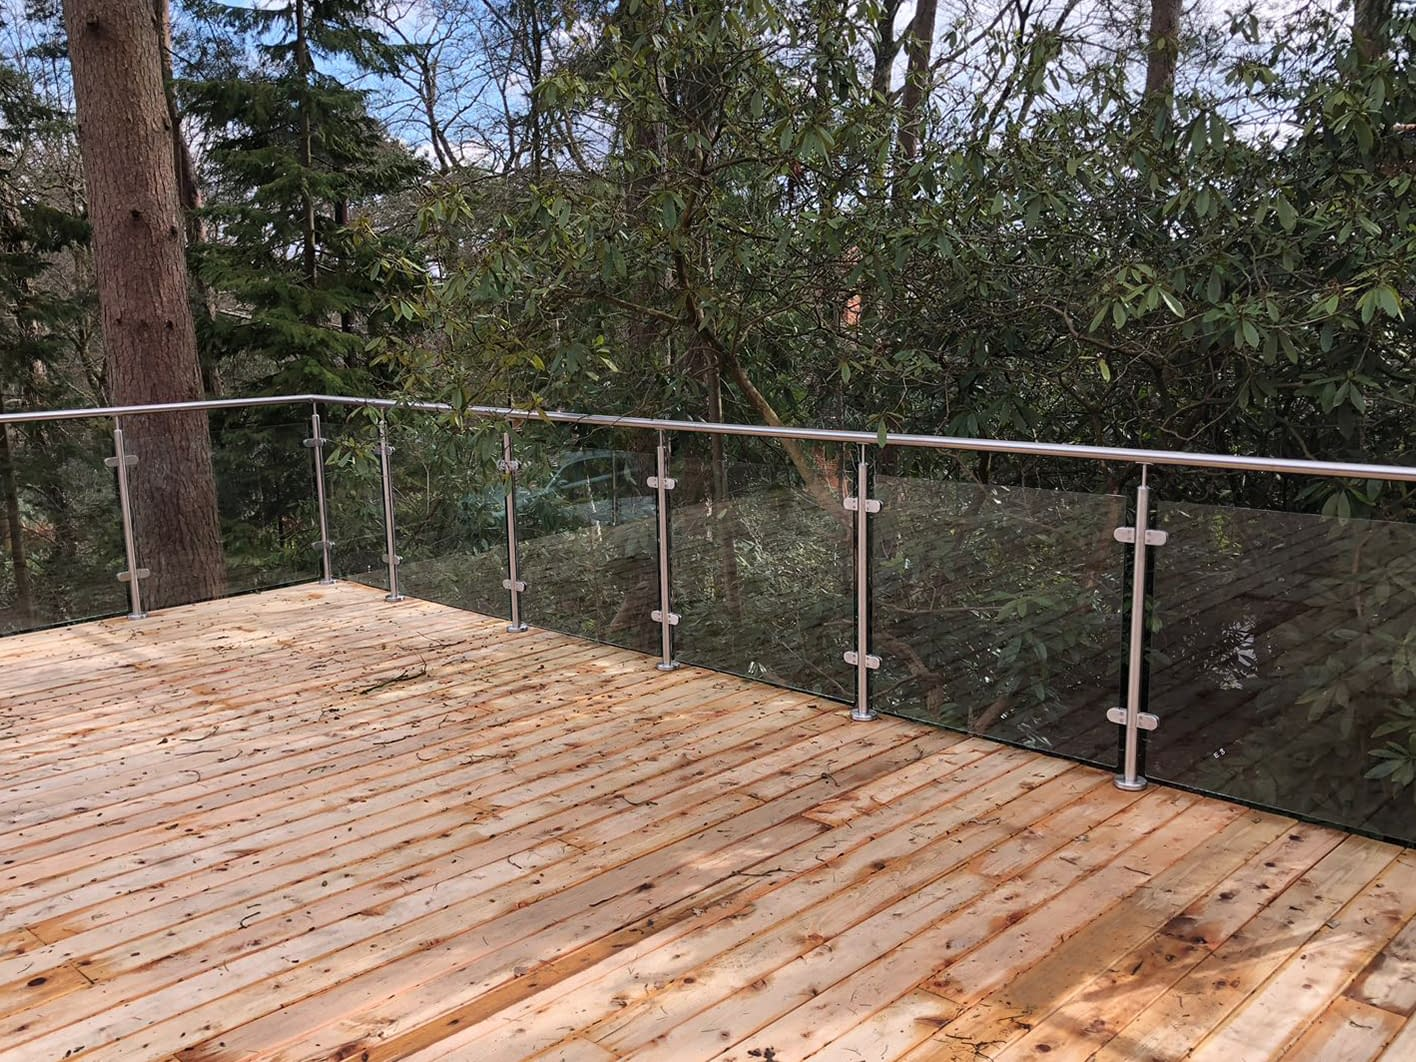 Stainless Steel Post & Rail Balustrade System on Wooden Decking